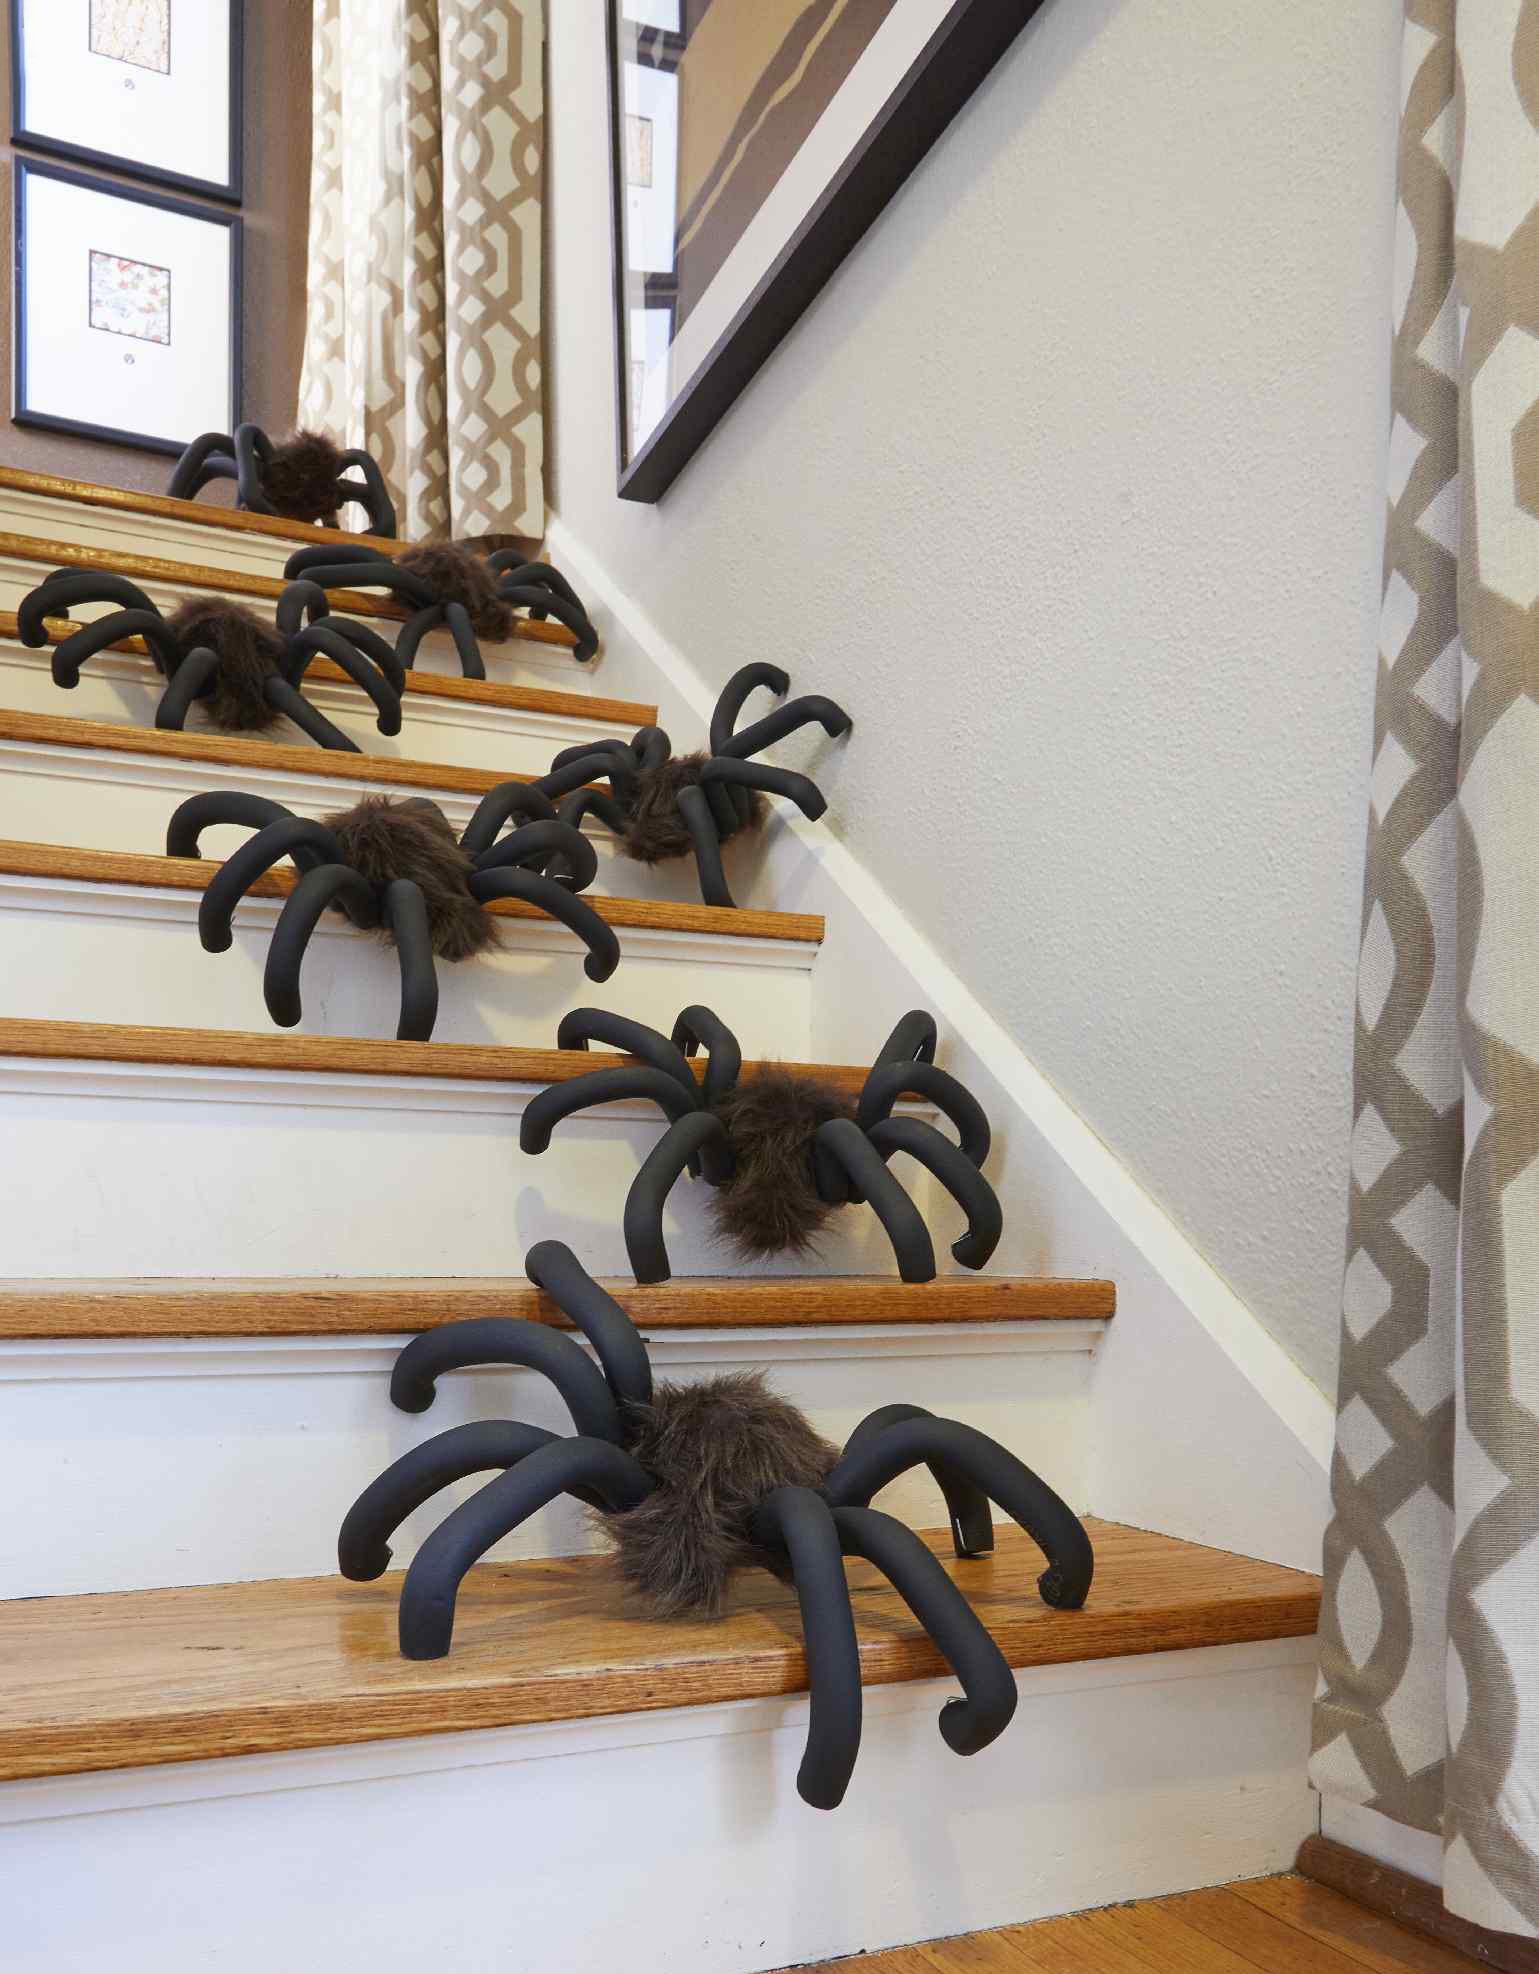 Large DIY fuzzy spiders climbing in a line down stairs